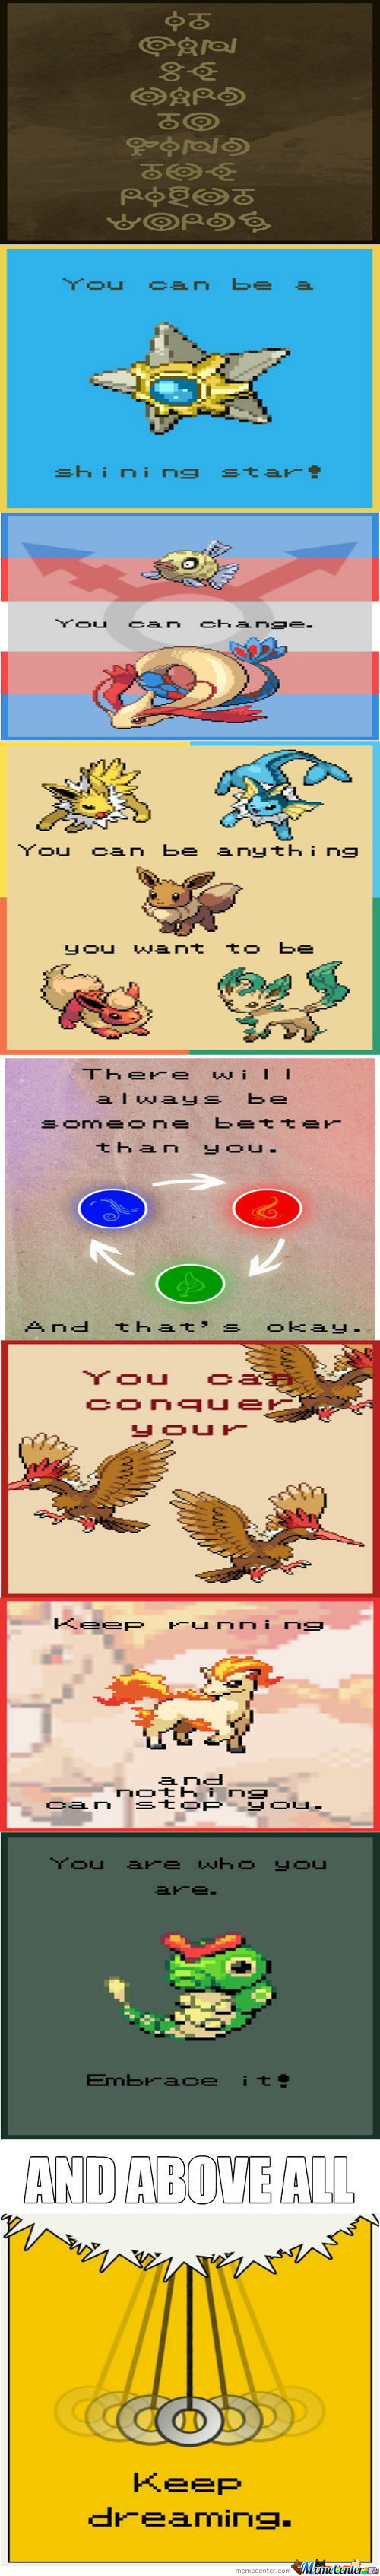 Pokemon Motivation.